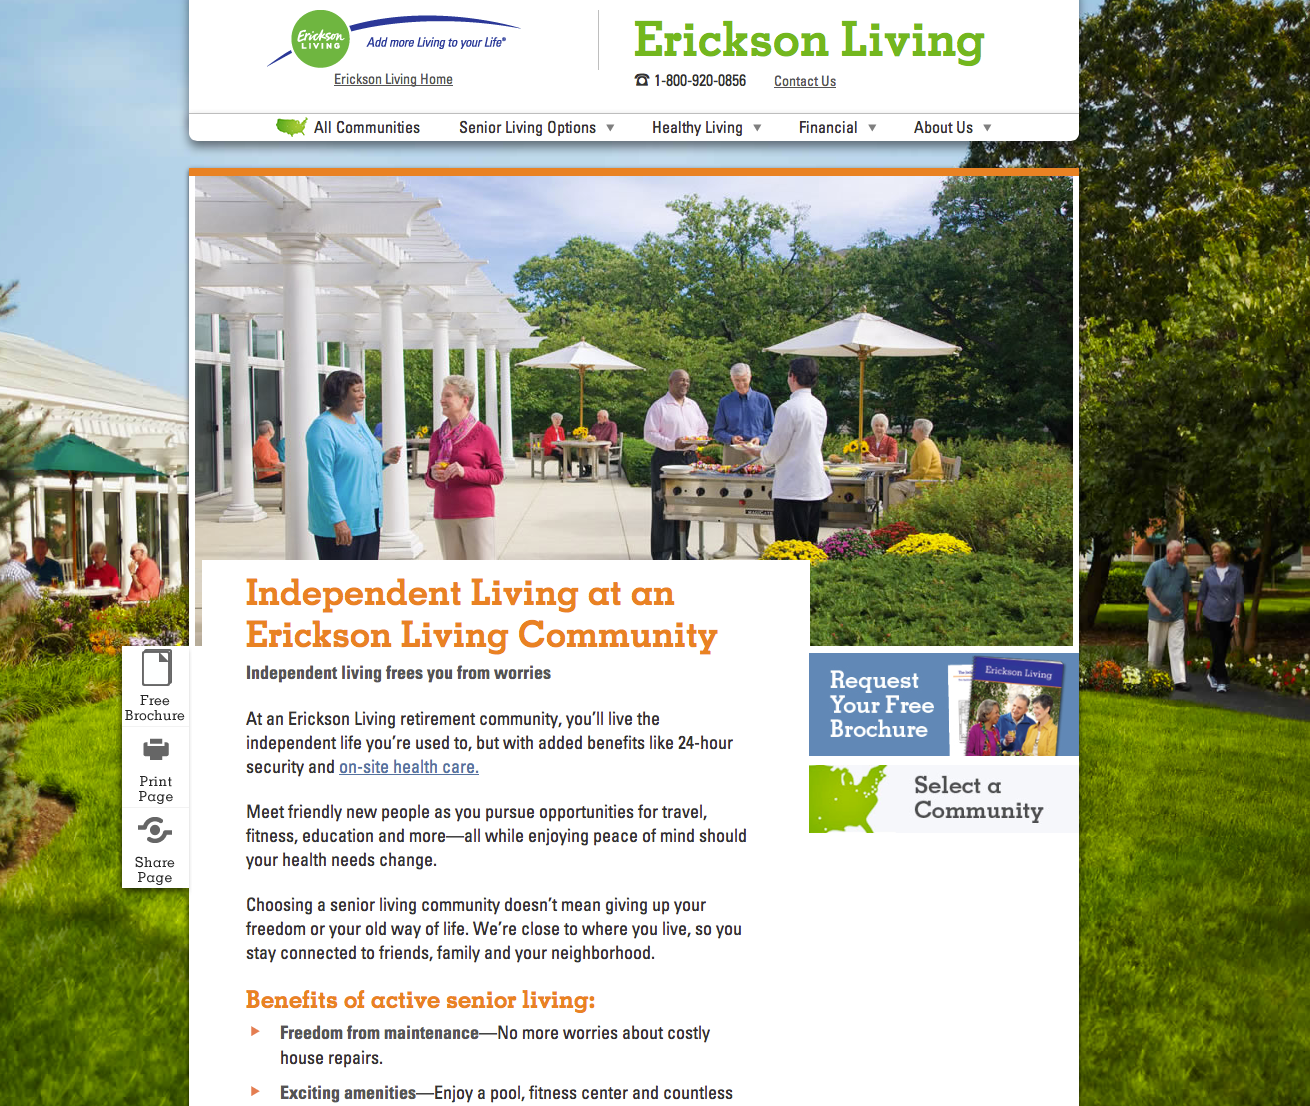 Erickson Living Site – WHO IS SPARK?